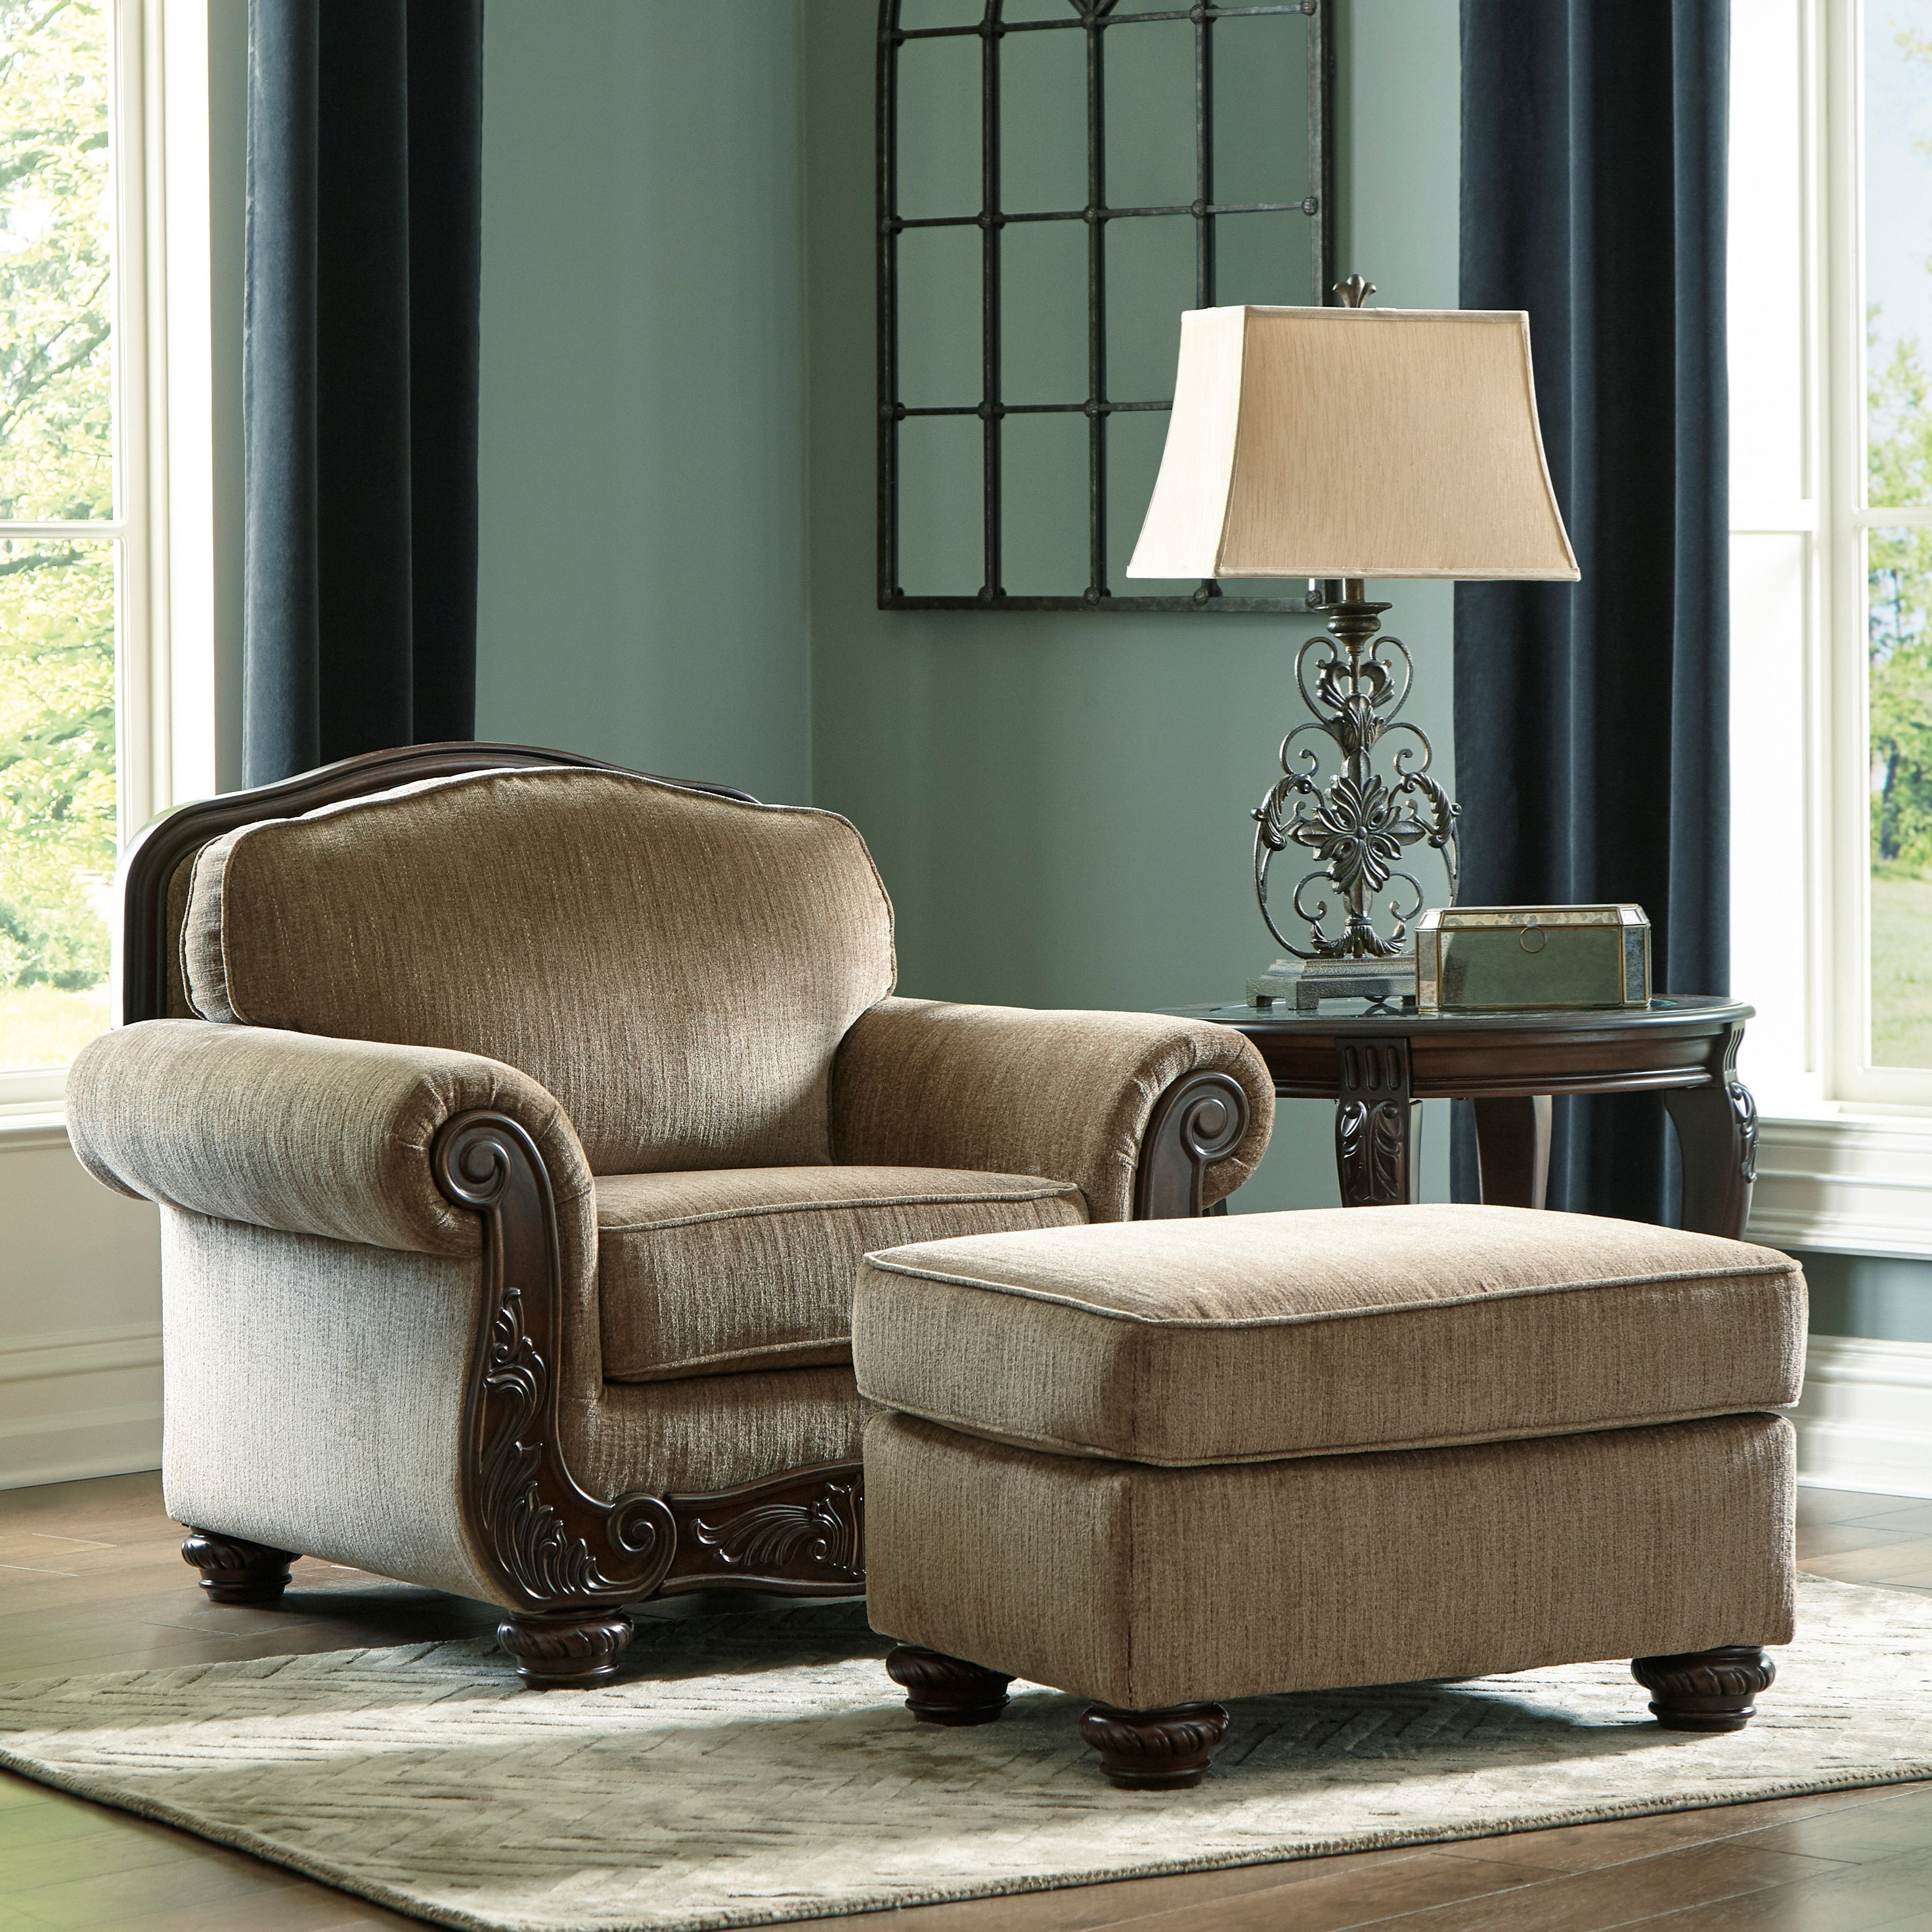 Briaroaks Chair and Ottoman Set by Benchcraft at Standard Furniture